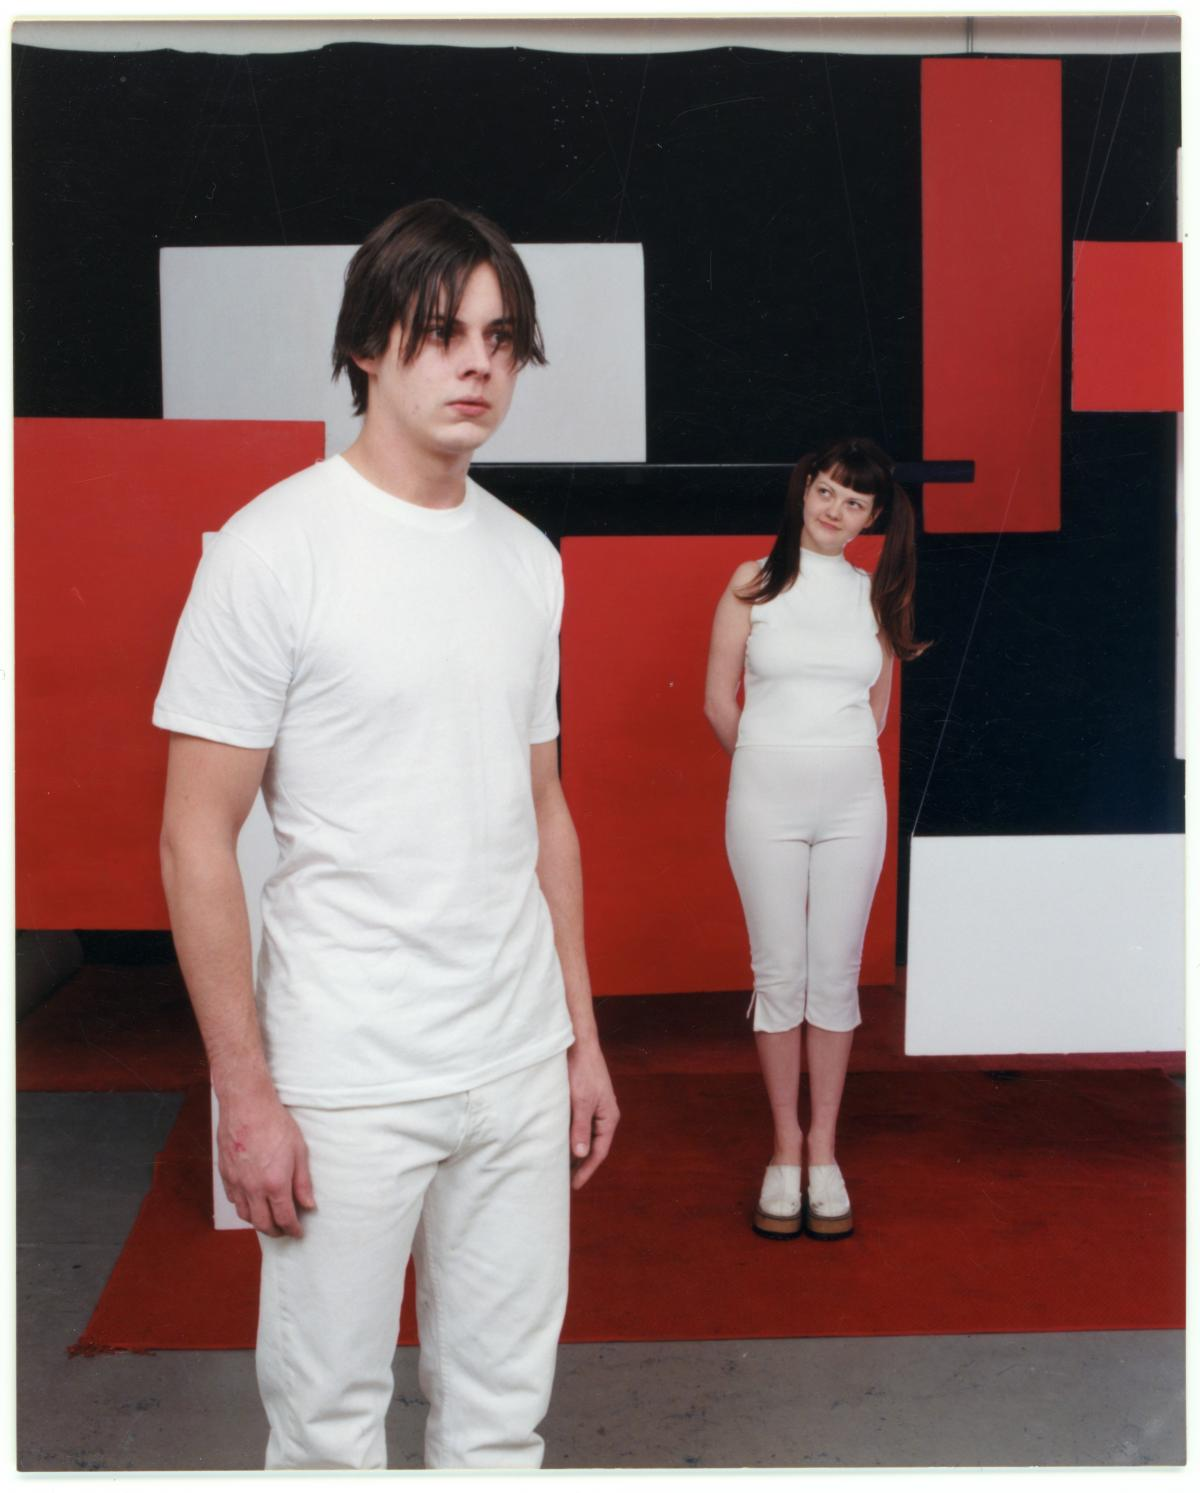 Jack and Meg White on the set of the De Stijl cover shoot.